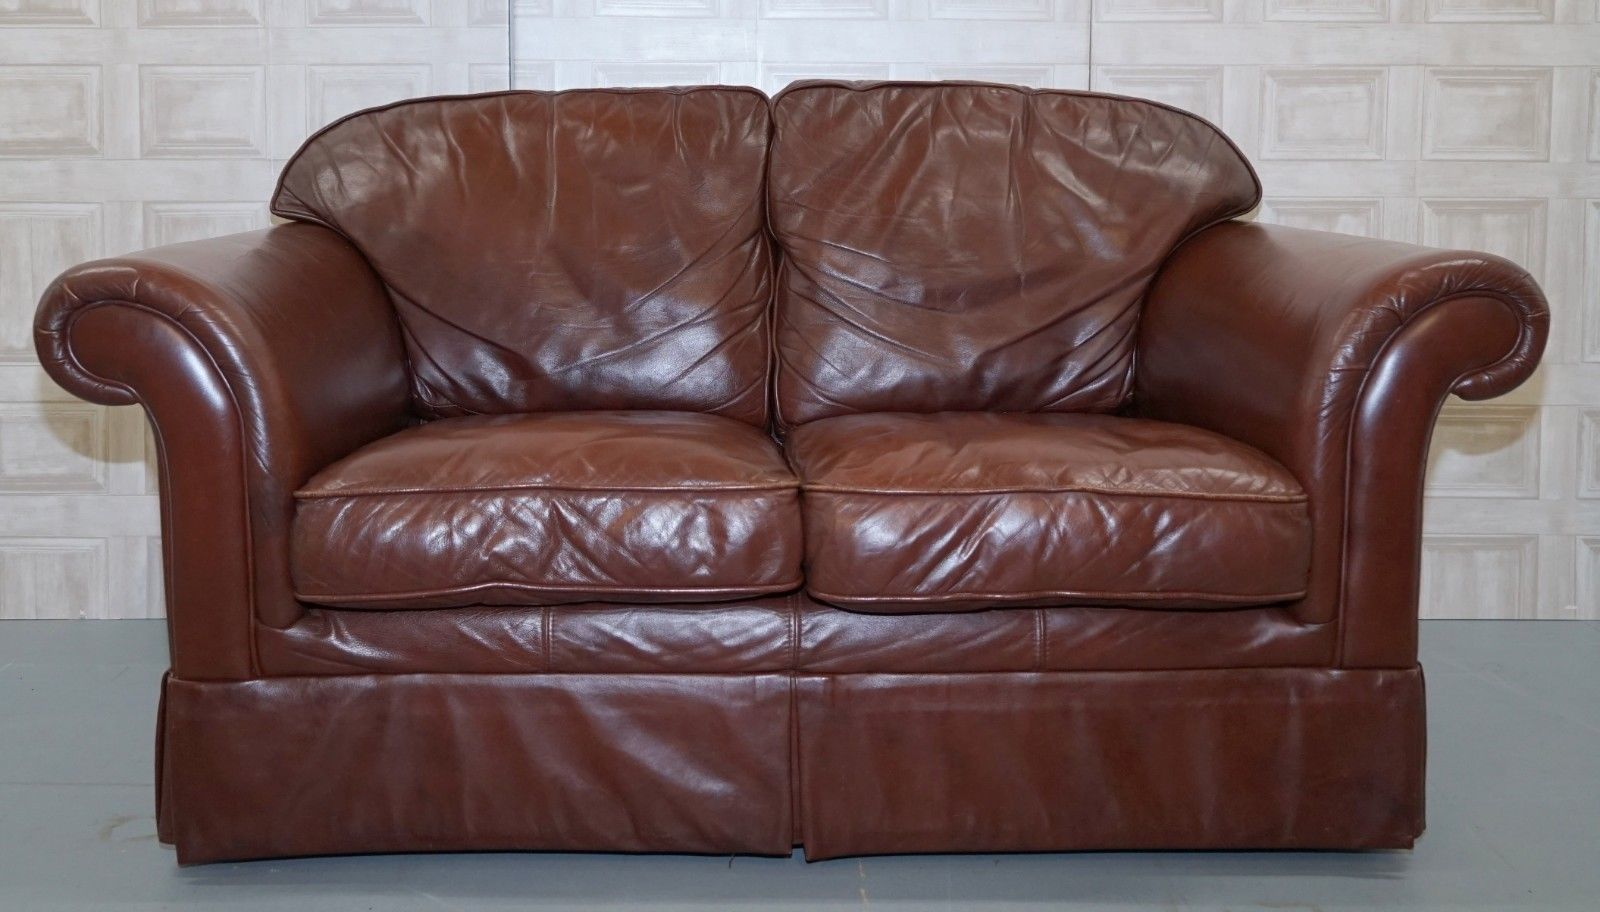 Laura Ashley Brown Leather Sofa In Very Good Condition | Laura ...